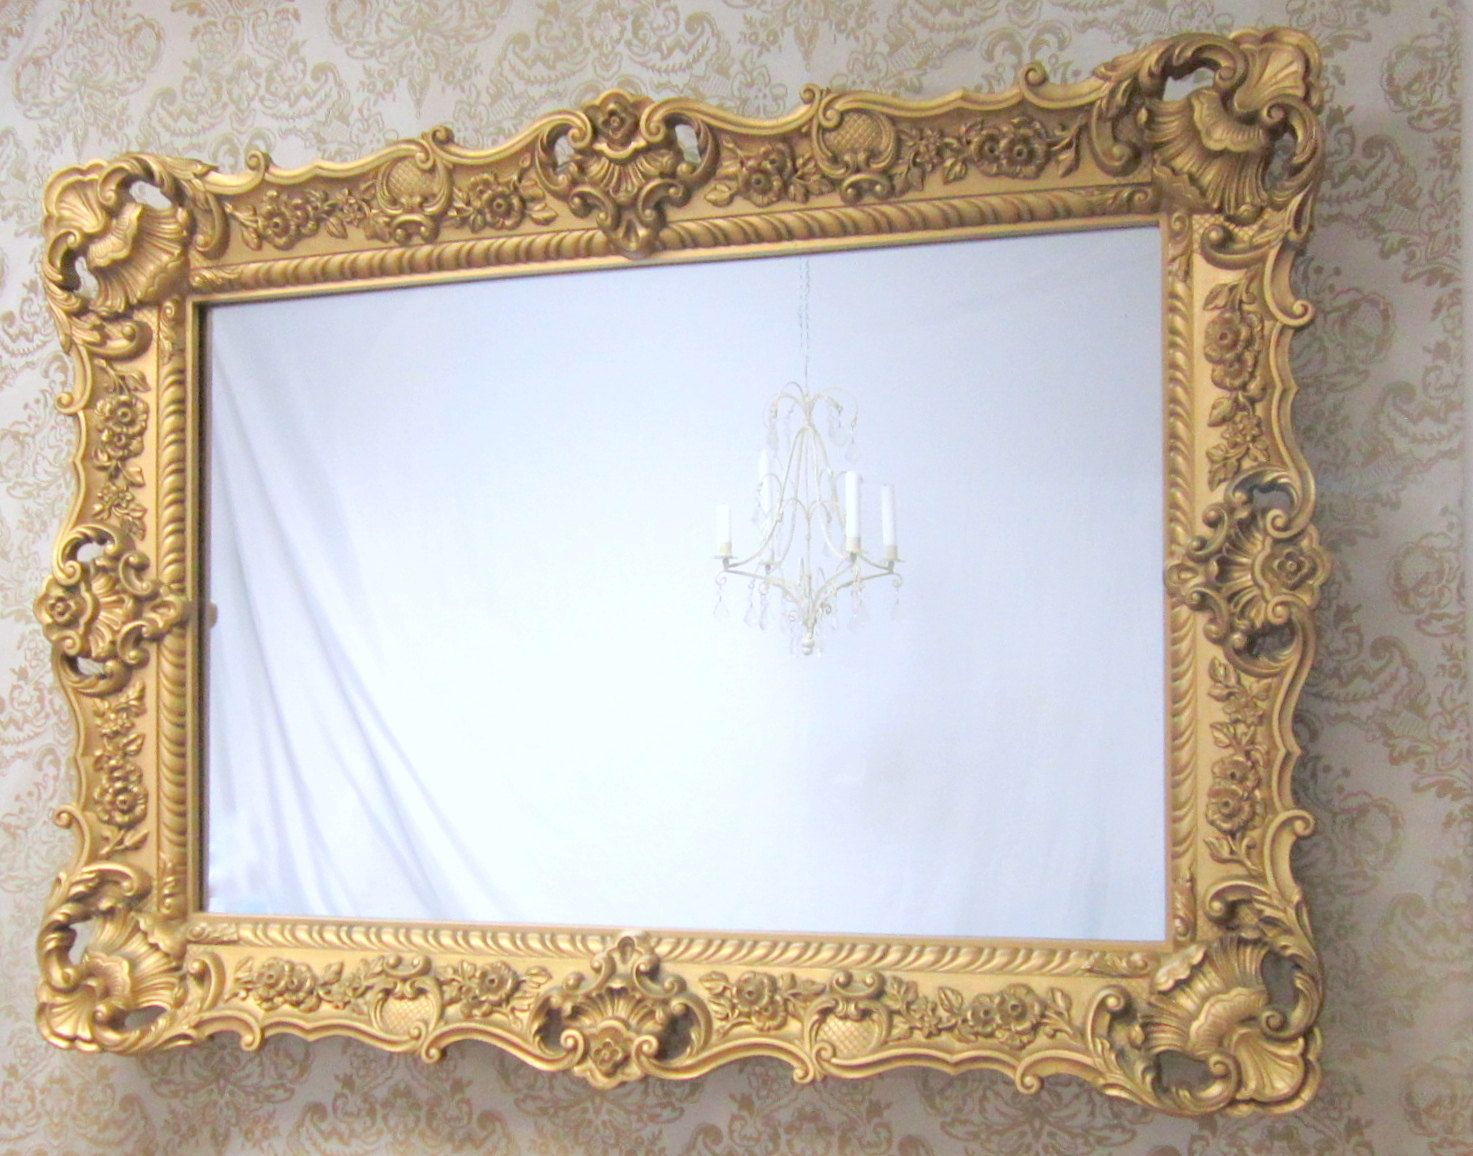 Hollywood Regency Mirrors For Sale 45 Quot X33 Quot Large Vanity Mirror Baroque Ornate Gold Frame Gold Framed Mirror Mirrors For Sale Hollywood Regency Mirror